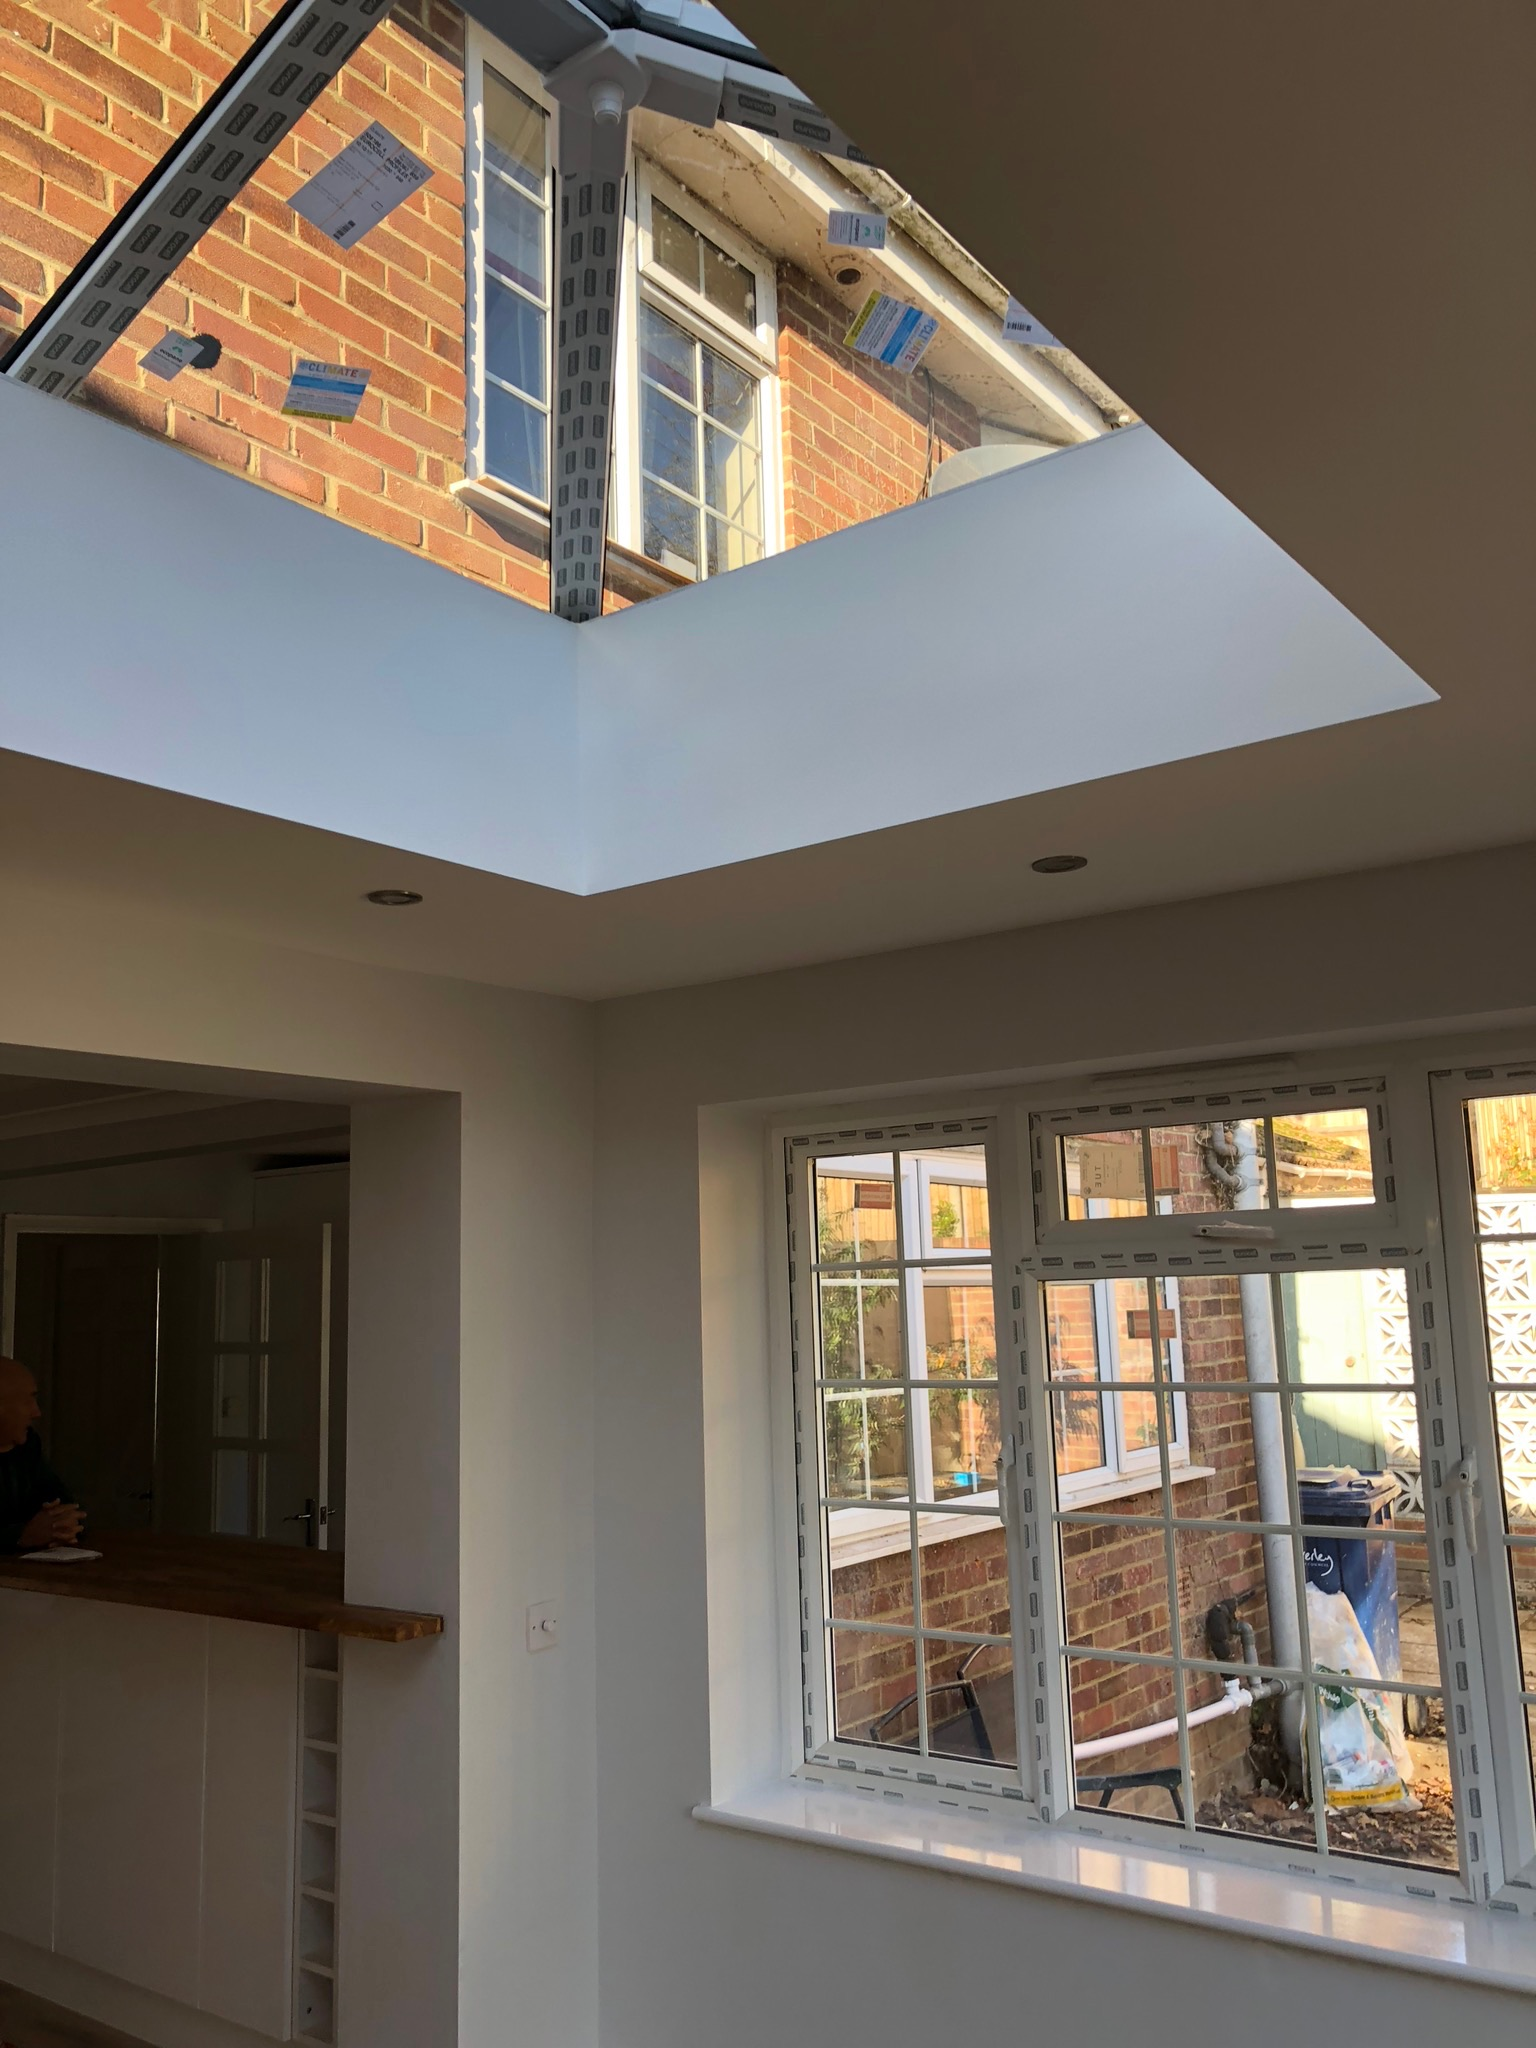 PLASTERING SERVICES WINNERSH, GUILDFORD, CAVERSHAM, SONNING, HENLEY, MARLOW, DATCHETT, WRAYSBURY,  CHERTSEY, KINGSTON, MAIDENHEAD, FLEET, FARNHAM, CROWTHORNE, BRACKNELL, READING,